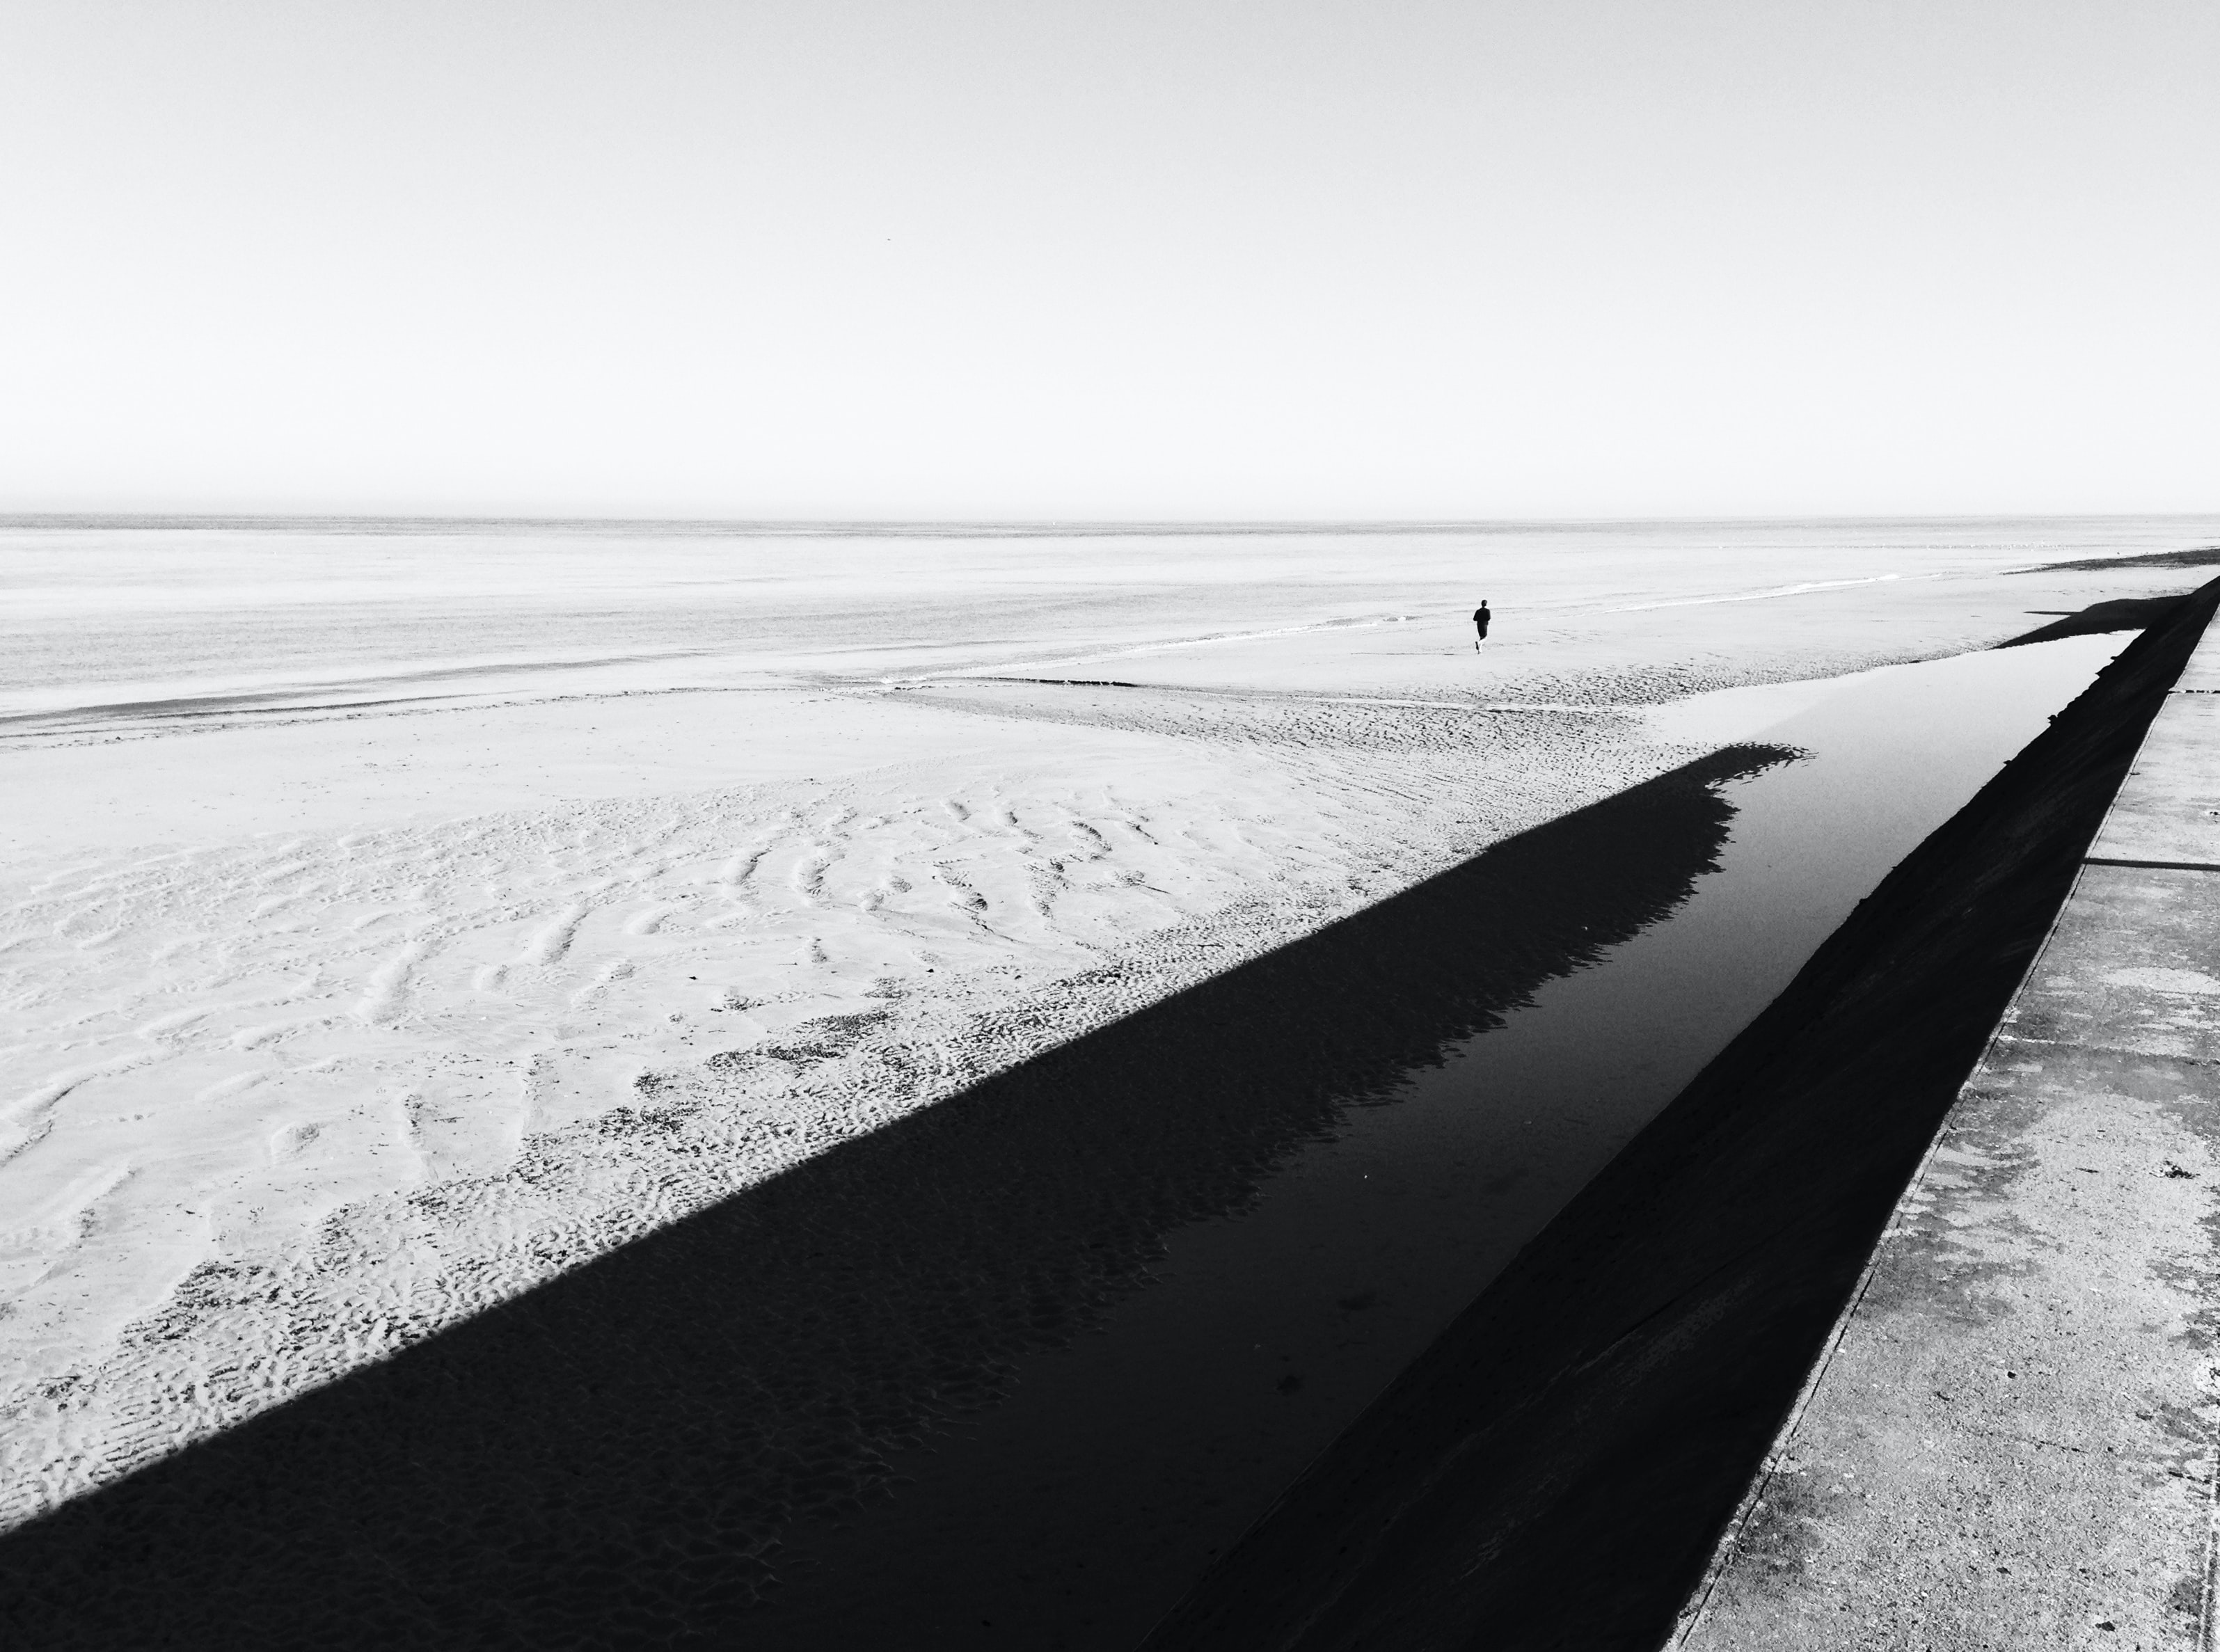 person walking on snow during daytime